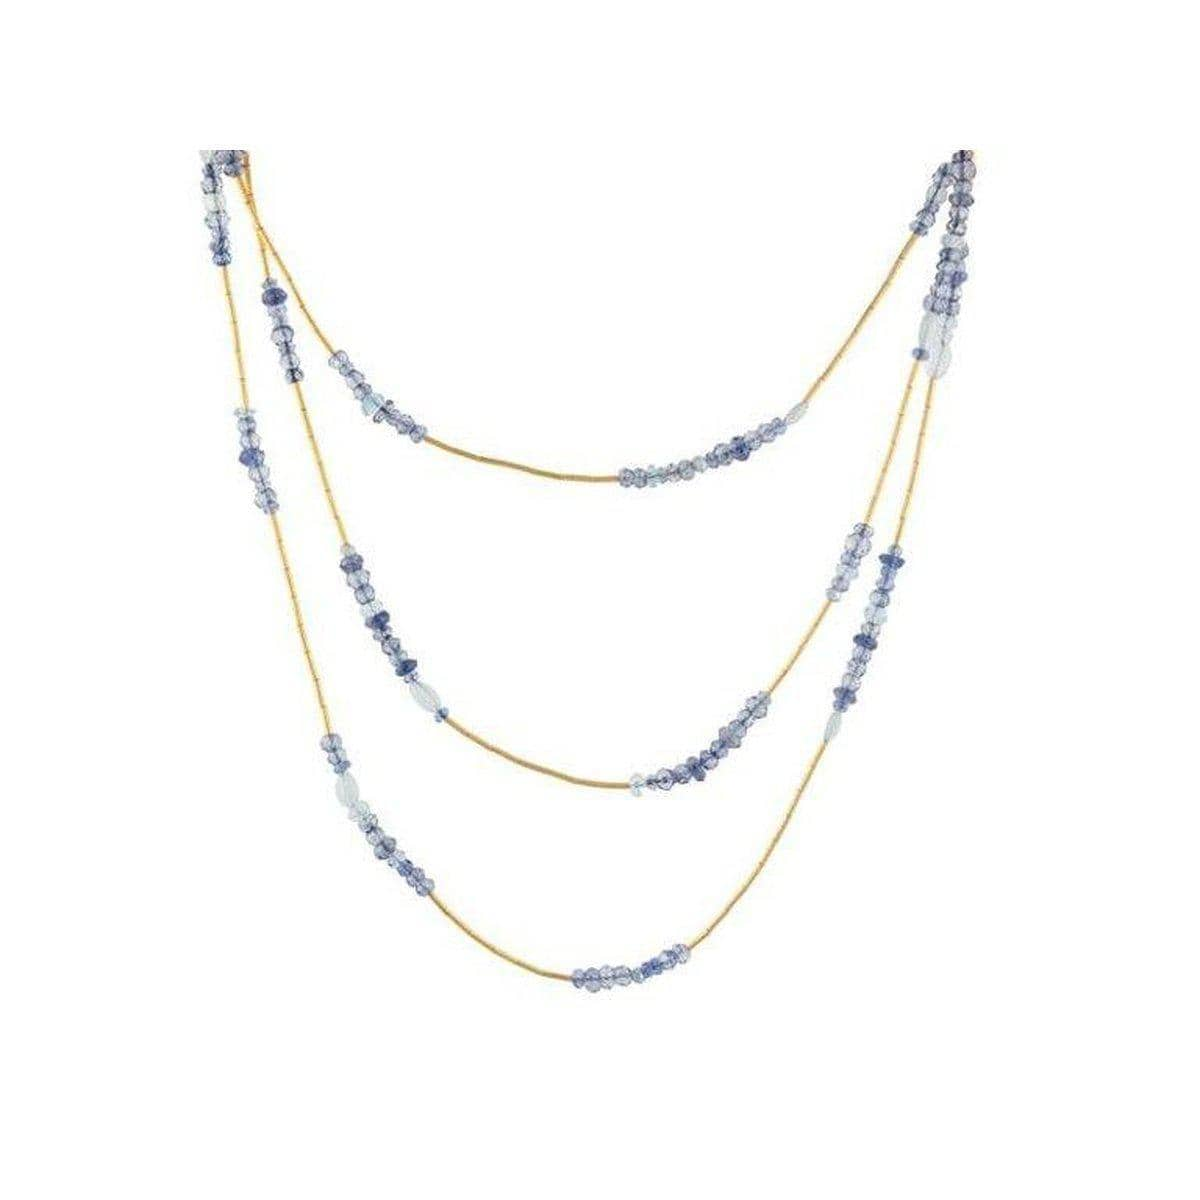 Delicate Hue 24K Gold Multi Necklace - DZN-MSMB-L-DBL-49